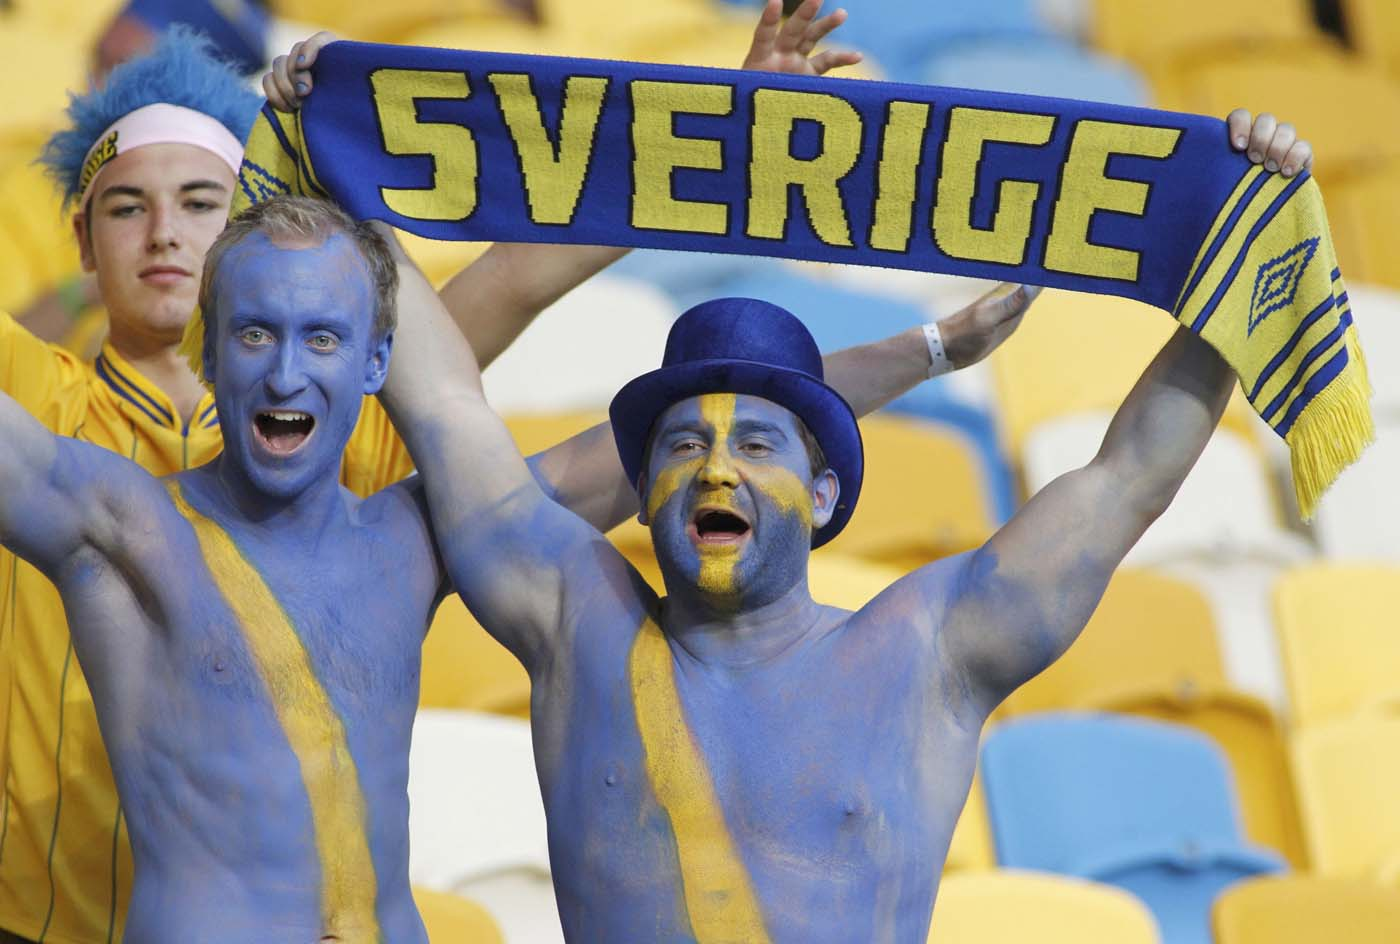 Sweden's soccer fans with painted bodies cheer before their Group D Euro 2012 soccer match against Ukraine at the Olympic stadium in Kiev, June 11, 2012. (Gleb Garanich/Reuters)